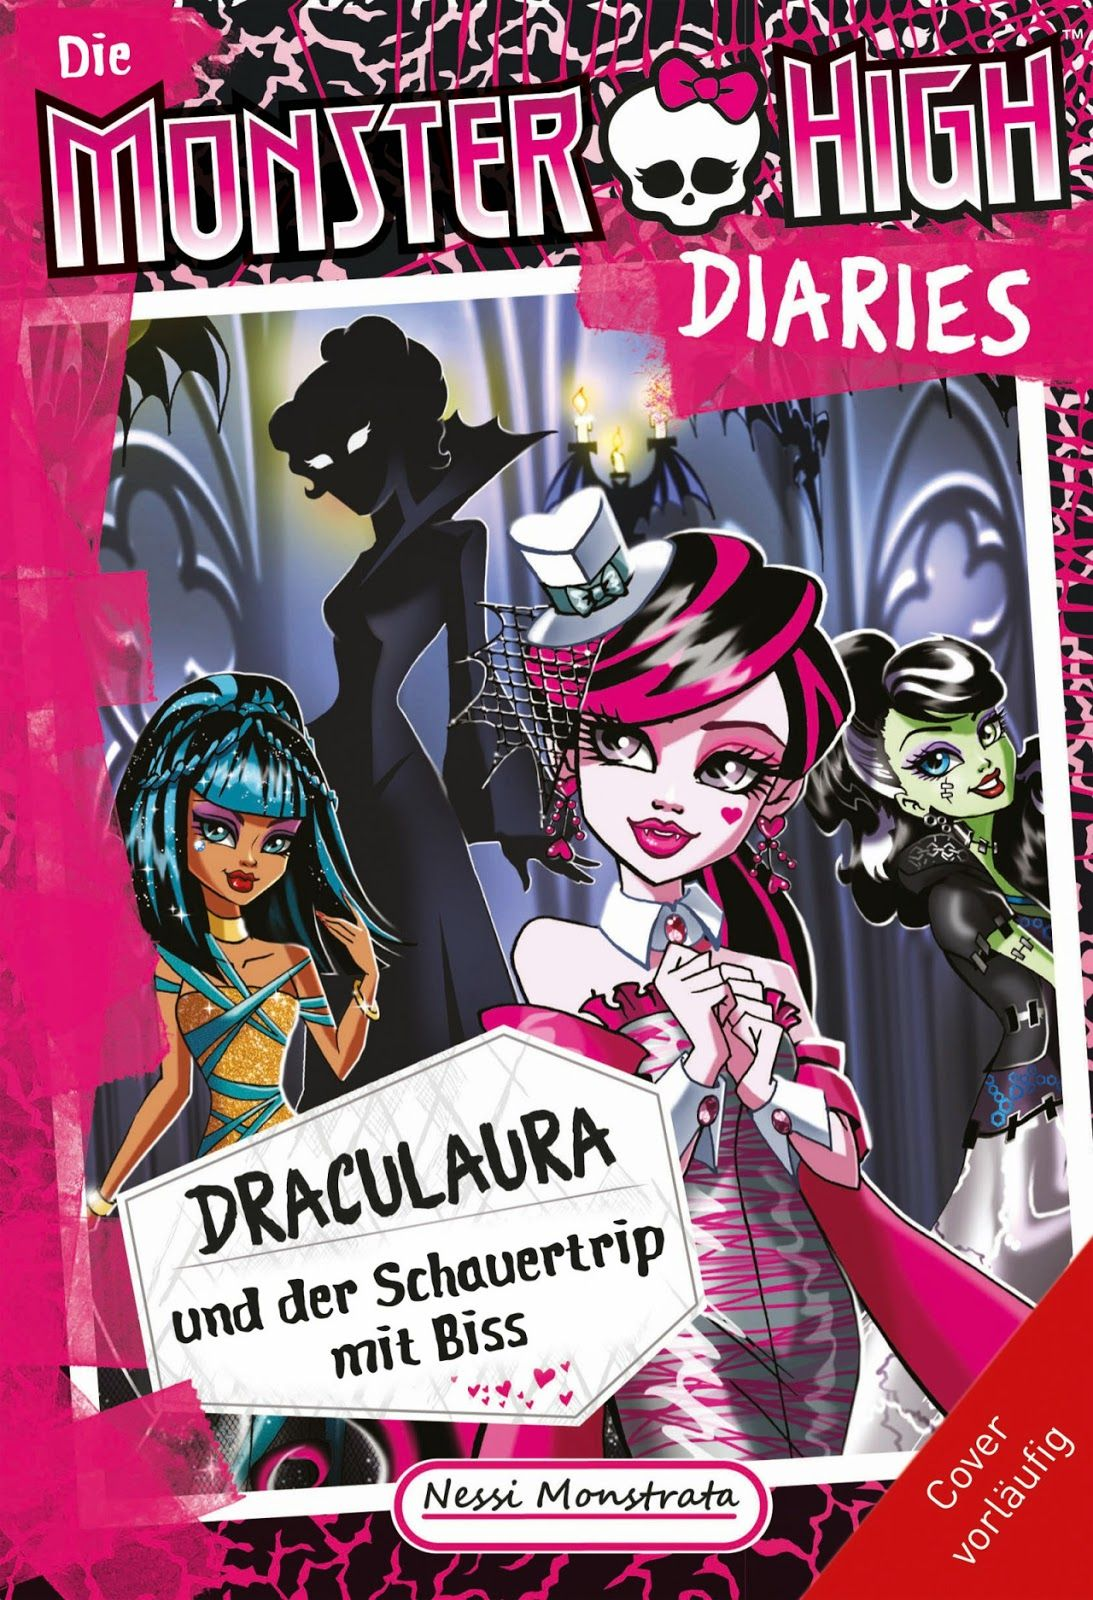 All about monster high monster high diaries draculaura